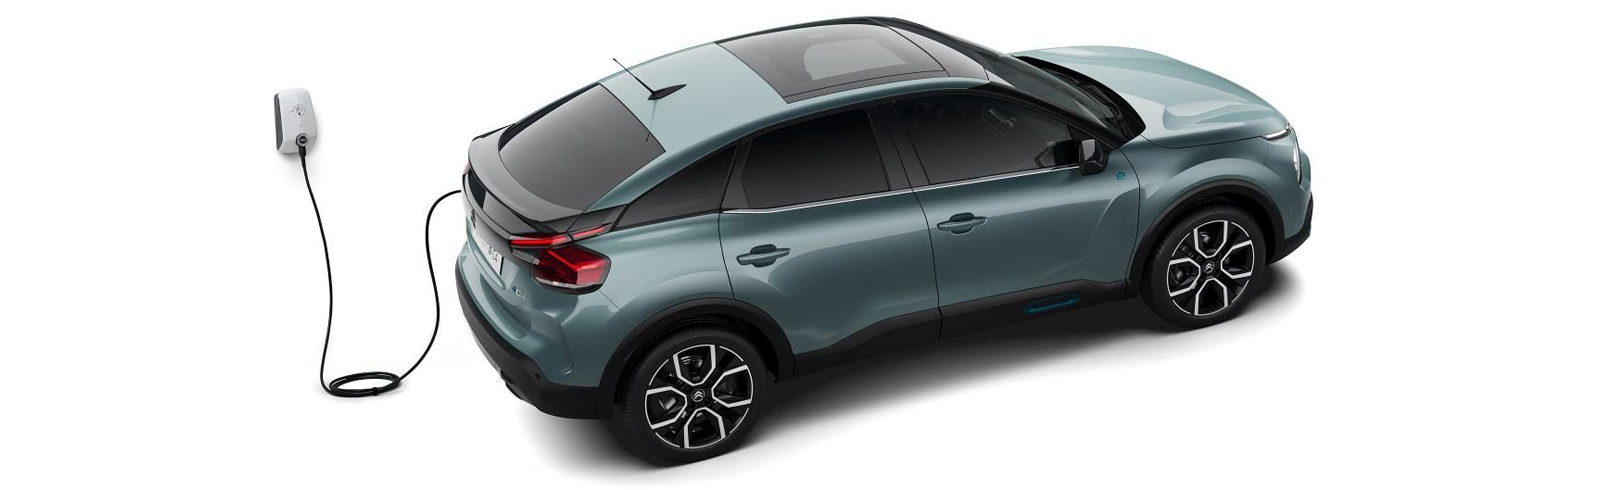 The Citroen e-C4 is the battery-electric version of the new Citroen C4